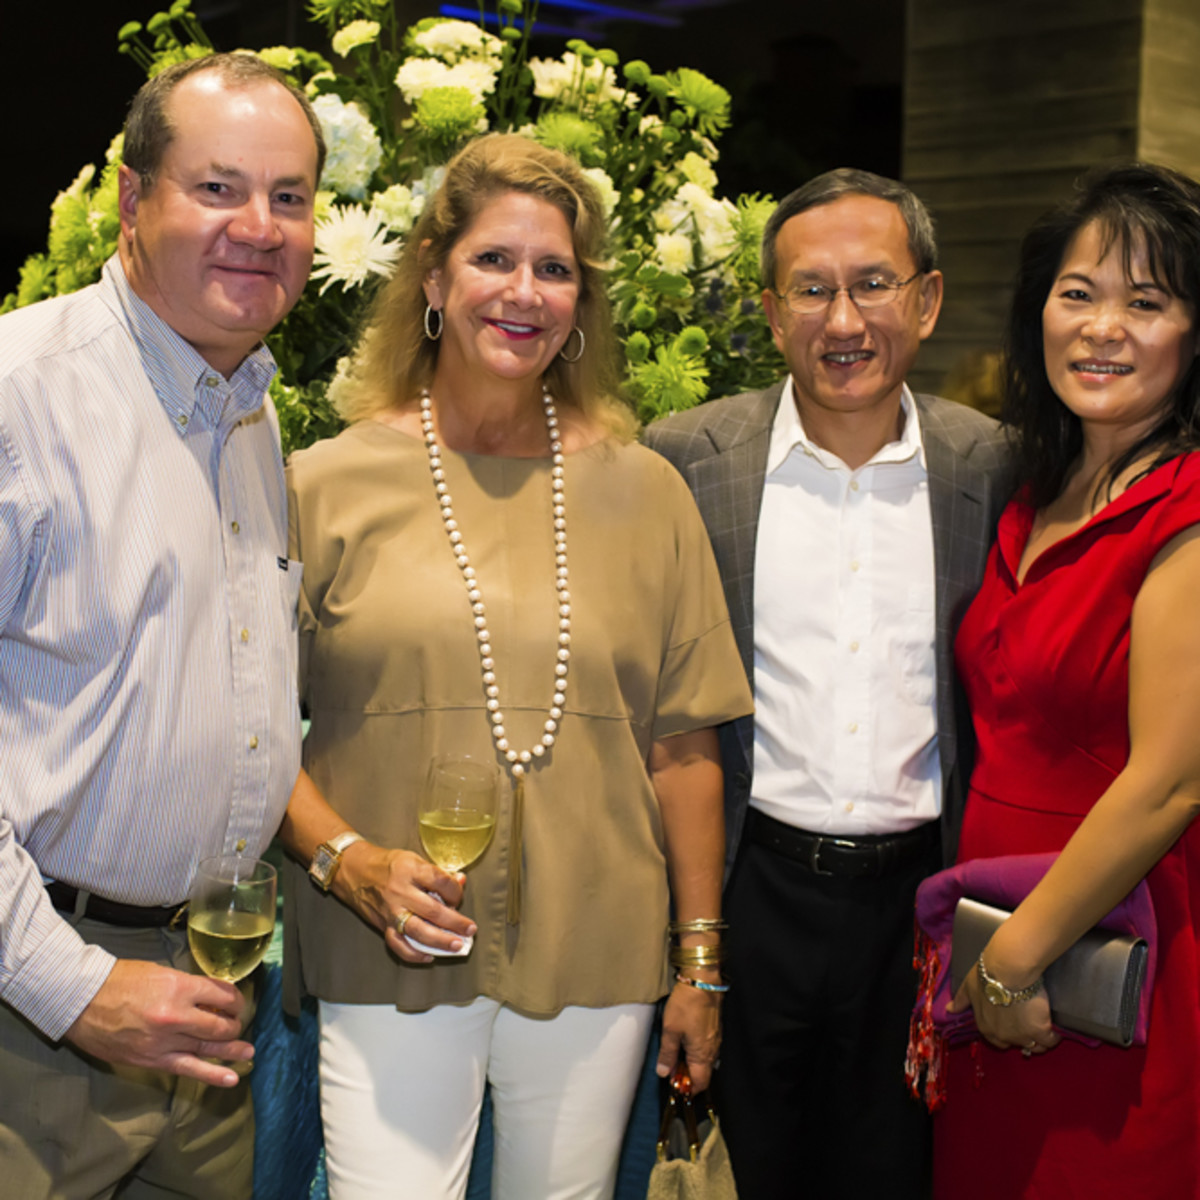 News, Shelby, Buffalo Bayou Partnership gala, Nov. 2015, Jeff Hines, Wendy Hines, Leo Chen, Jennifer Chen